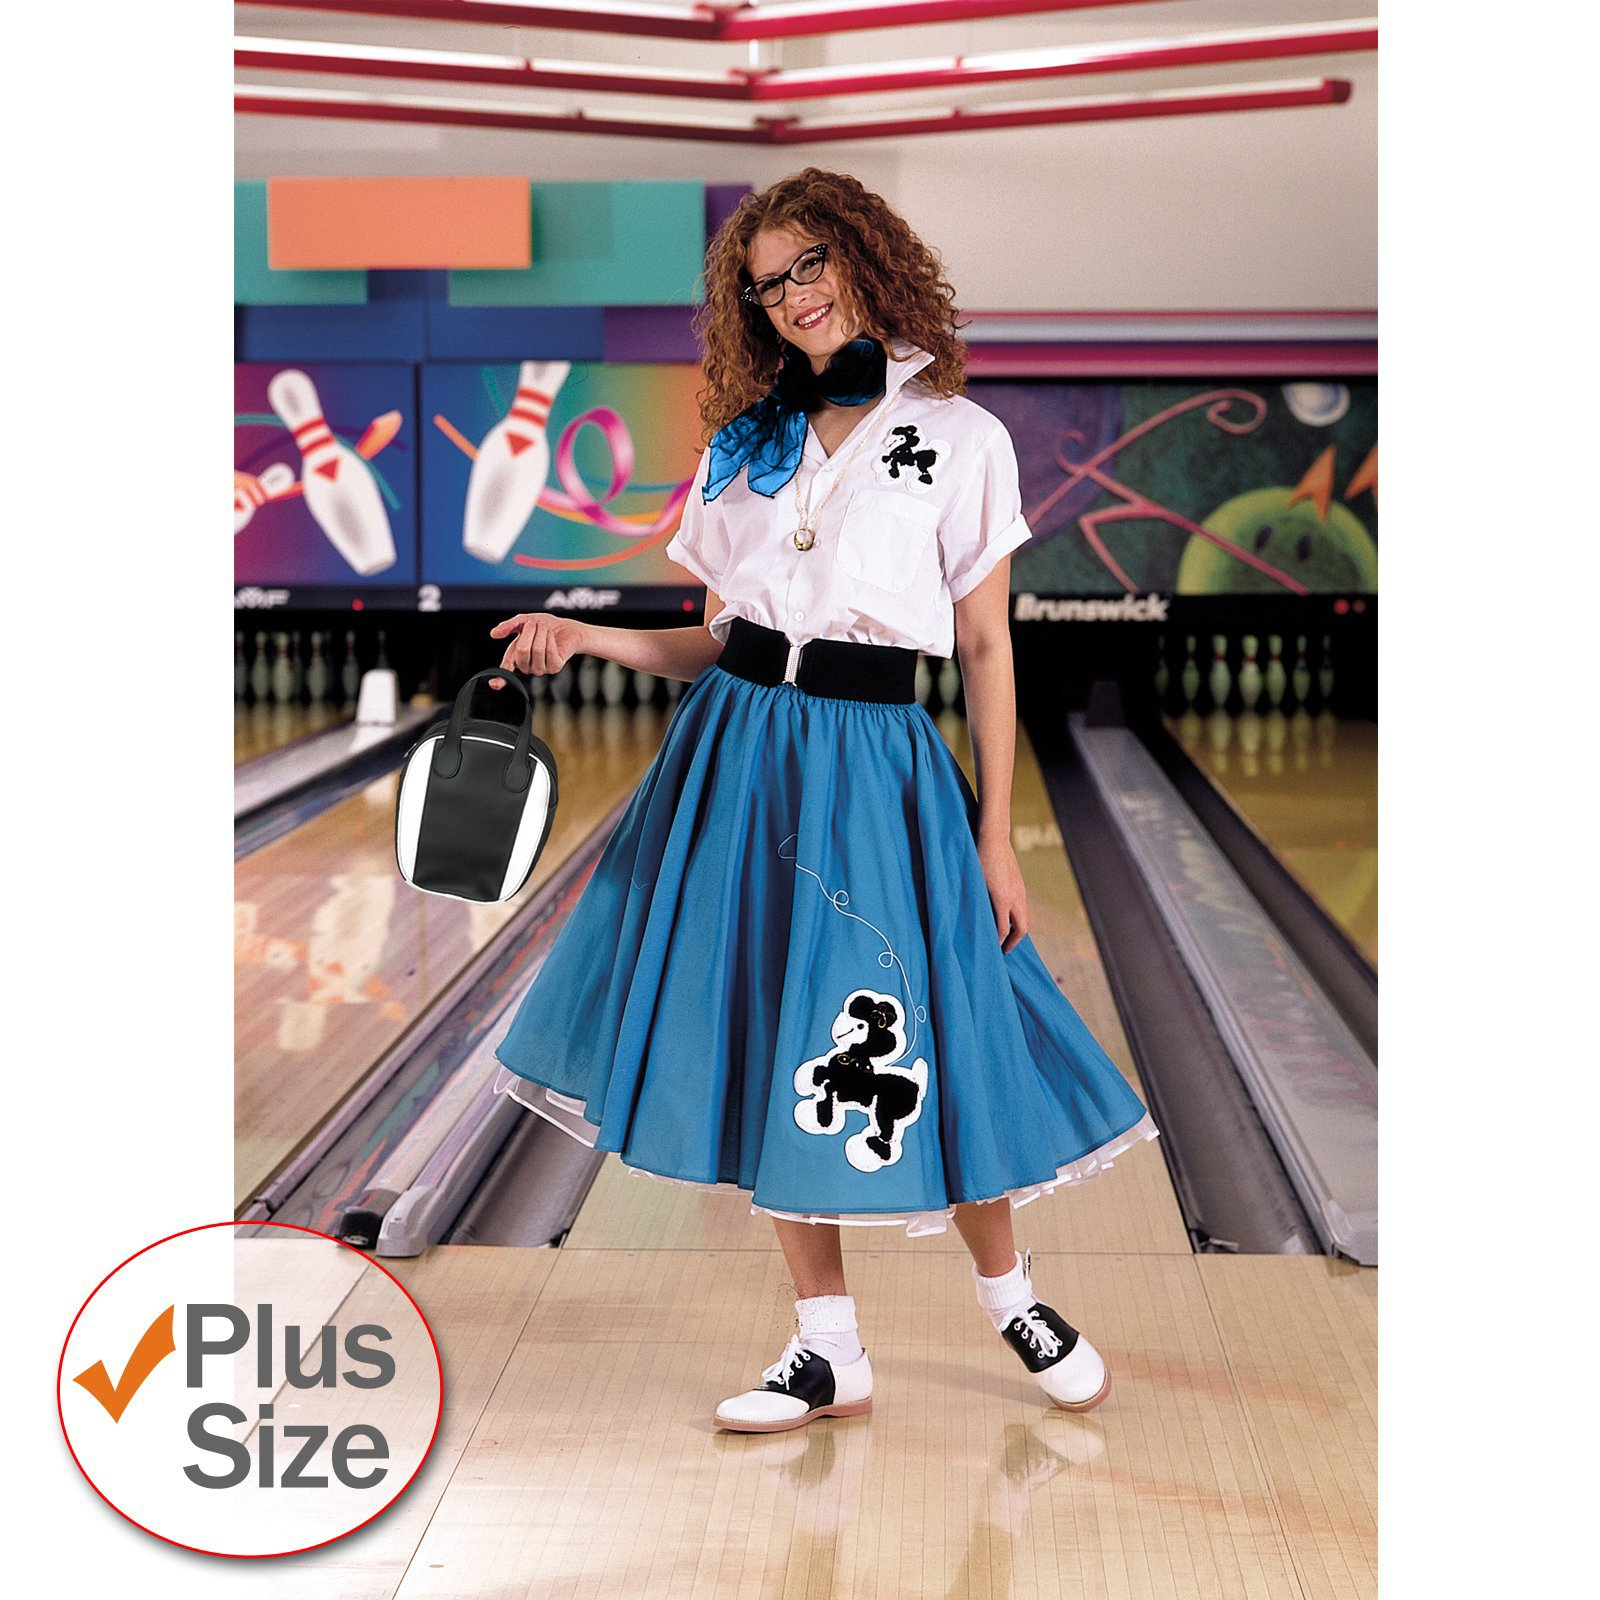 Complete Poodle Skirt Outfit Plus (Turquoise & White) Adult Cos